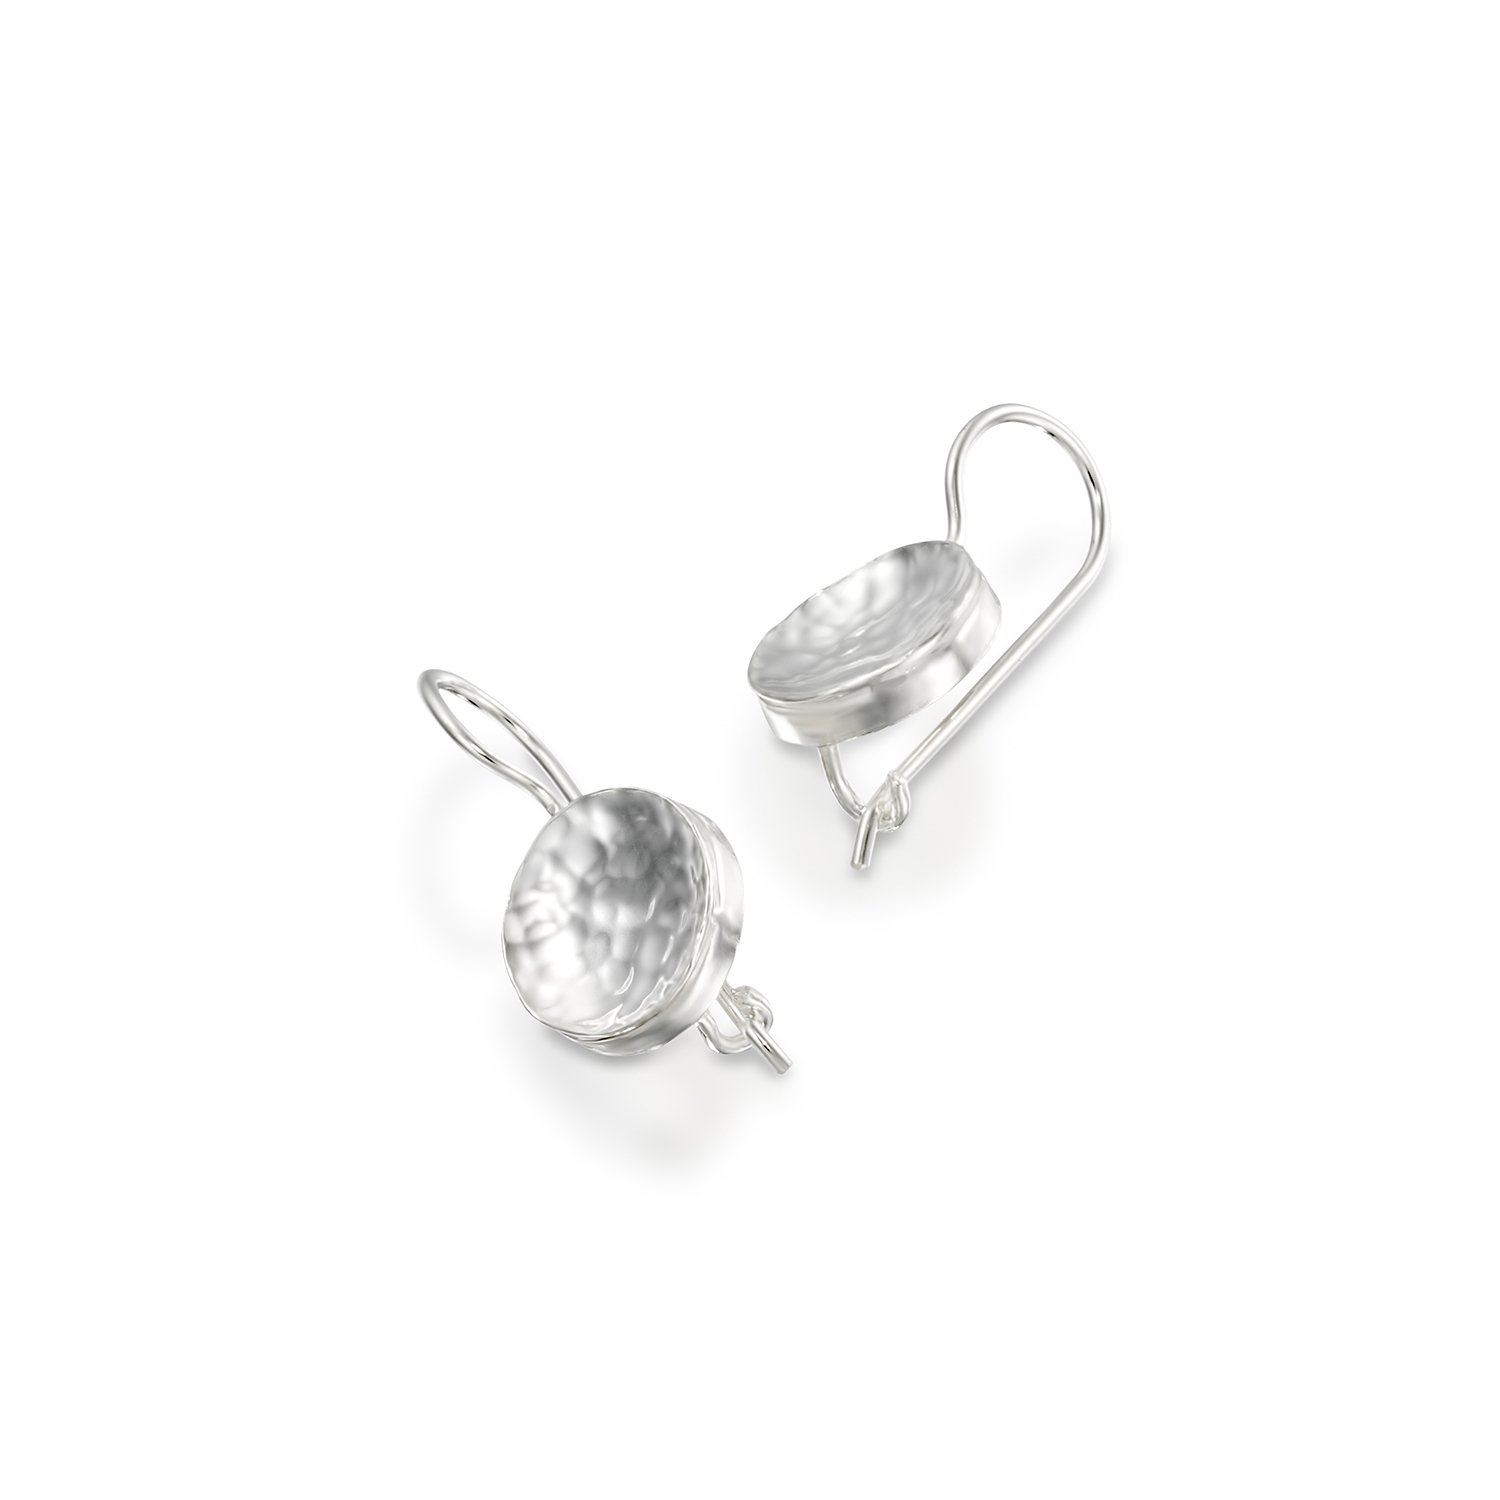 Graceful 925 Sterling Silver Drop Earrings Hammered Round Shaped with Secure Backs